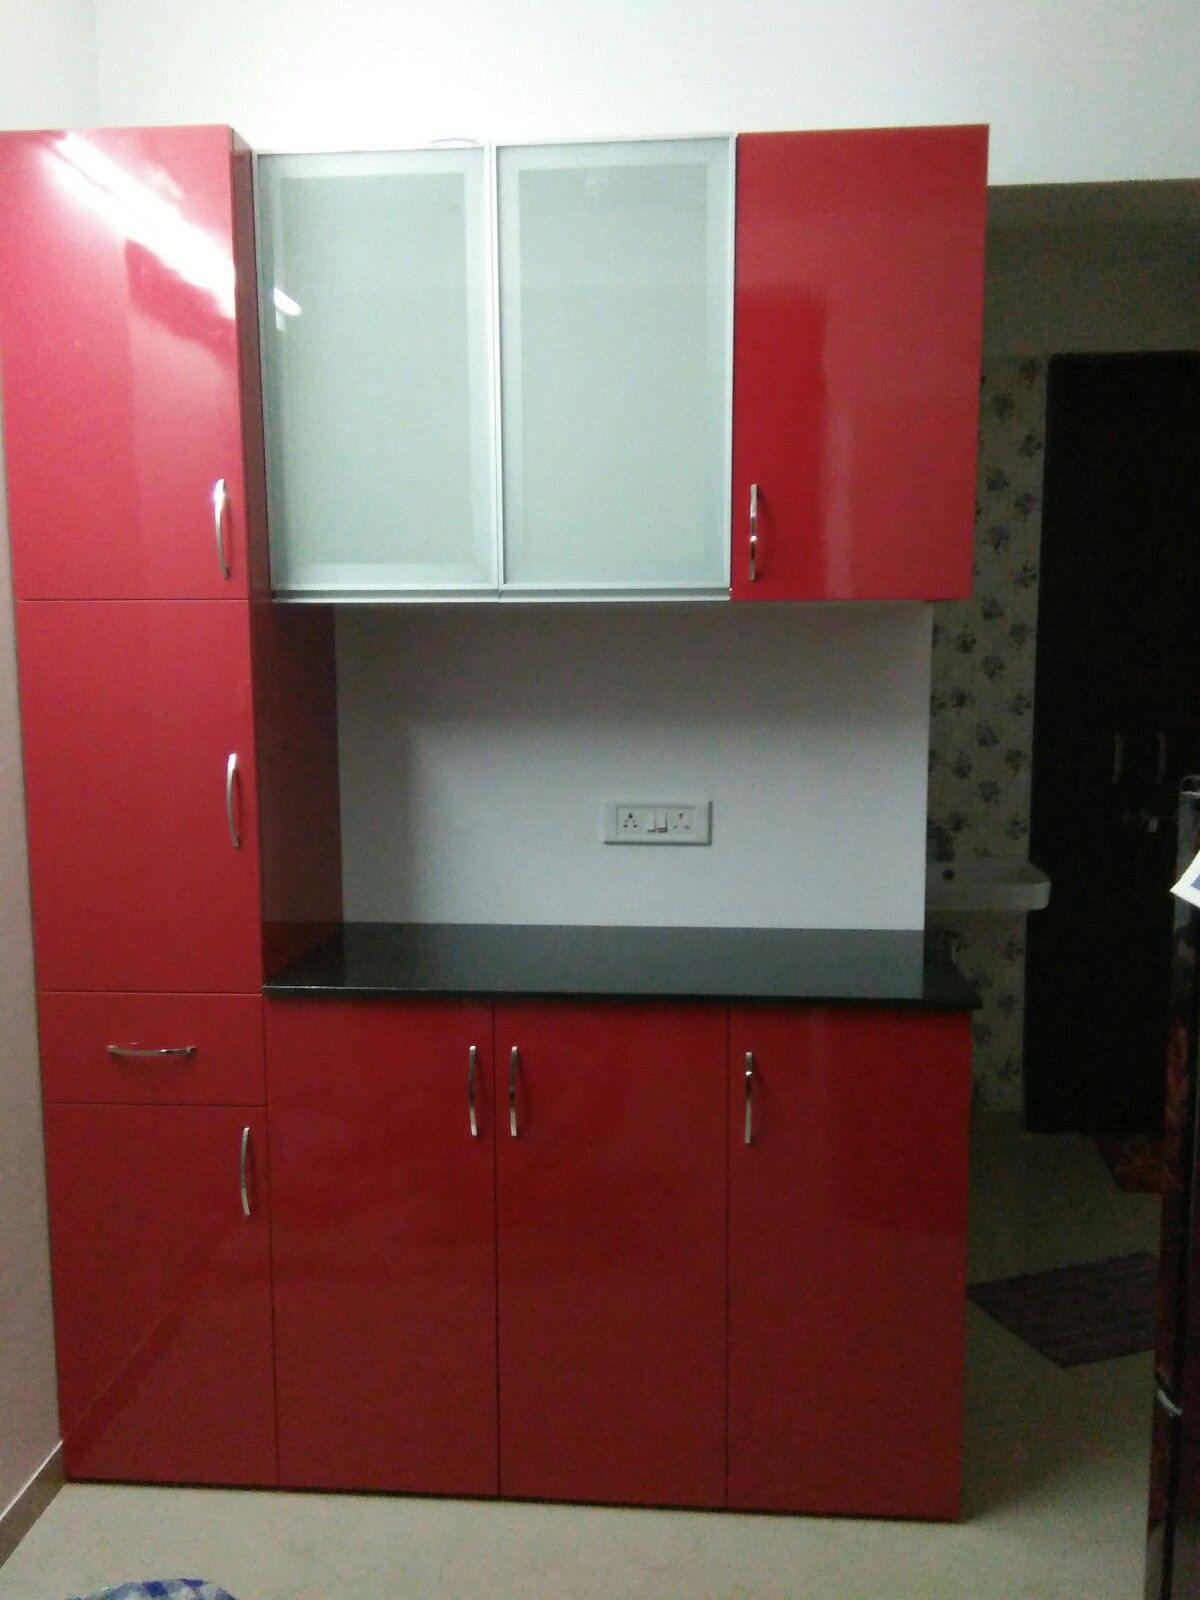 Modular kitchen modular furniture extra base unit tall for Tall kitchen wall units